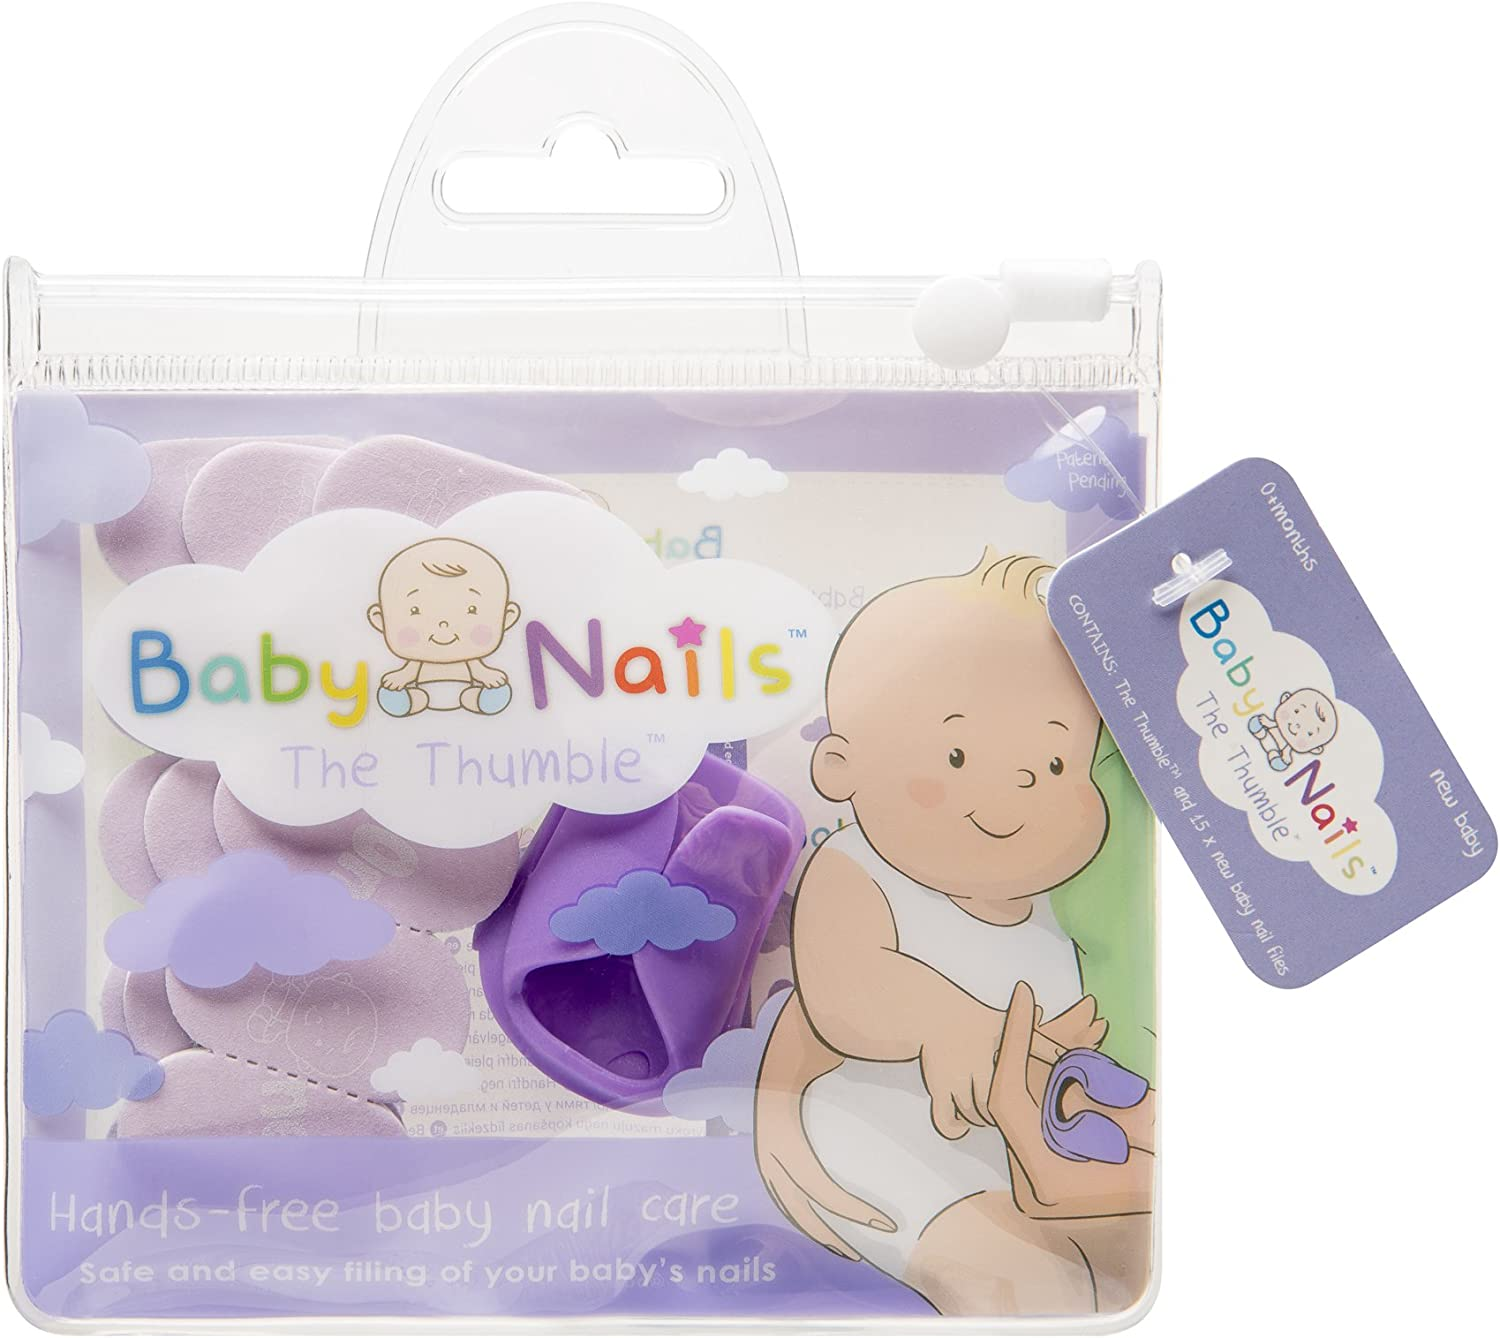 The Thumble - Wearable Baby Nail File image 1